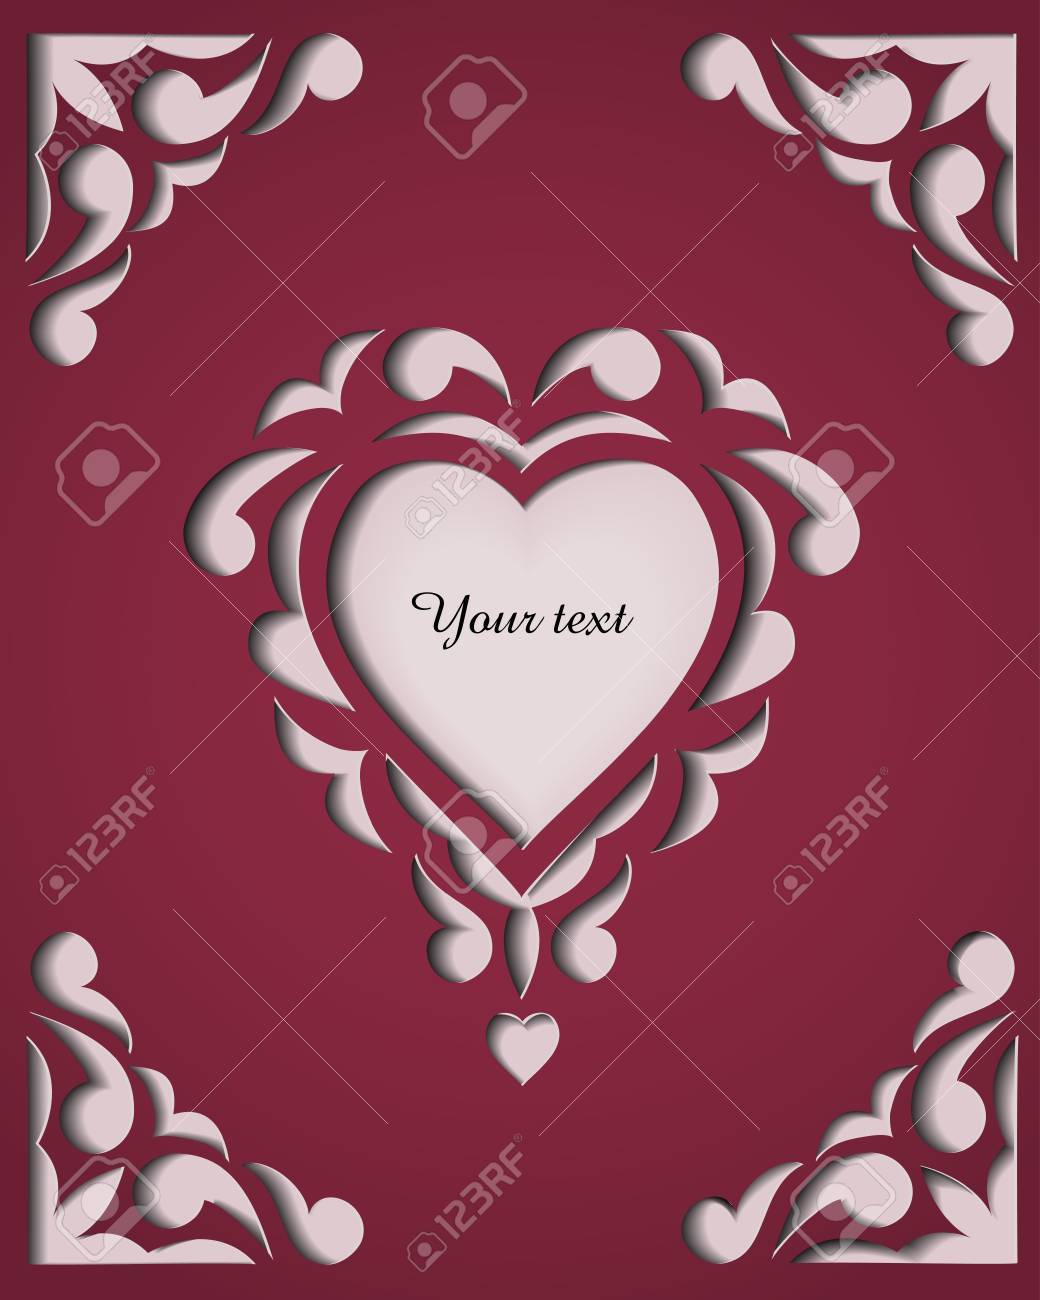 Paper Cutout Card With Heart Template Frame Design Stock Photo ...